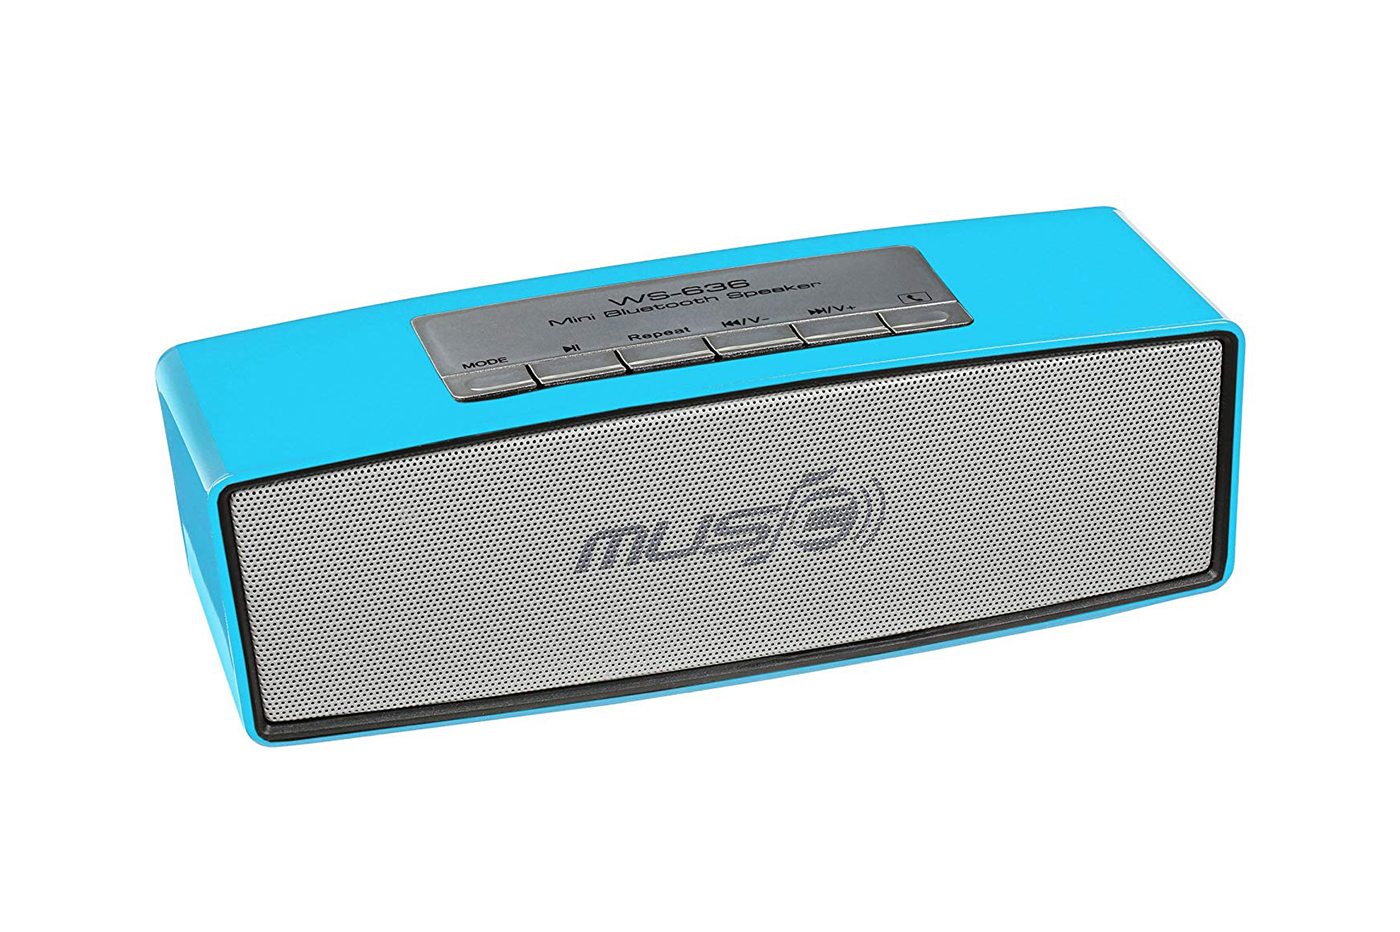 Mini wireless speaker cassa altoparlante bluetooth usb vivavoce portatile oz-007